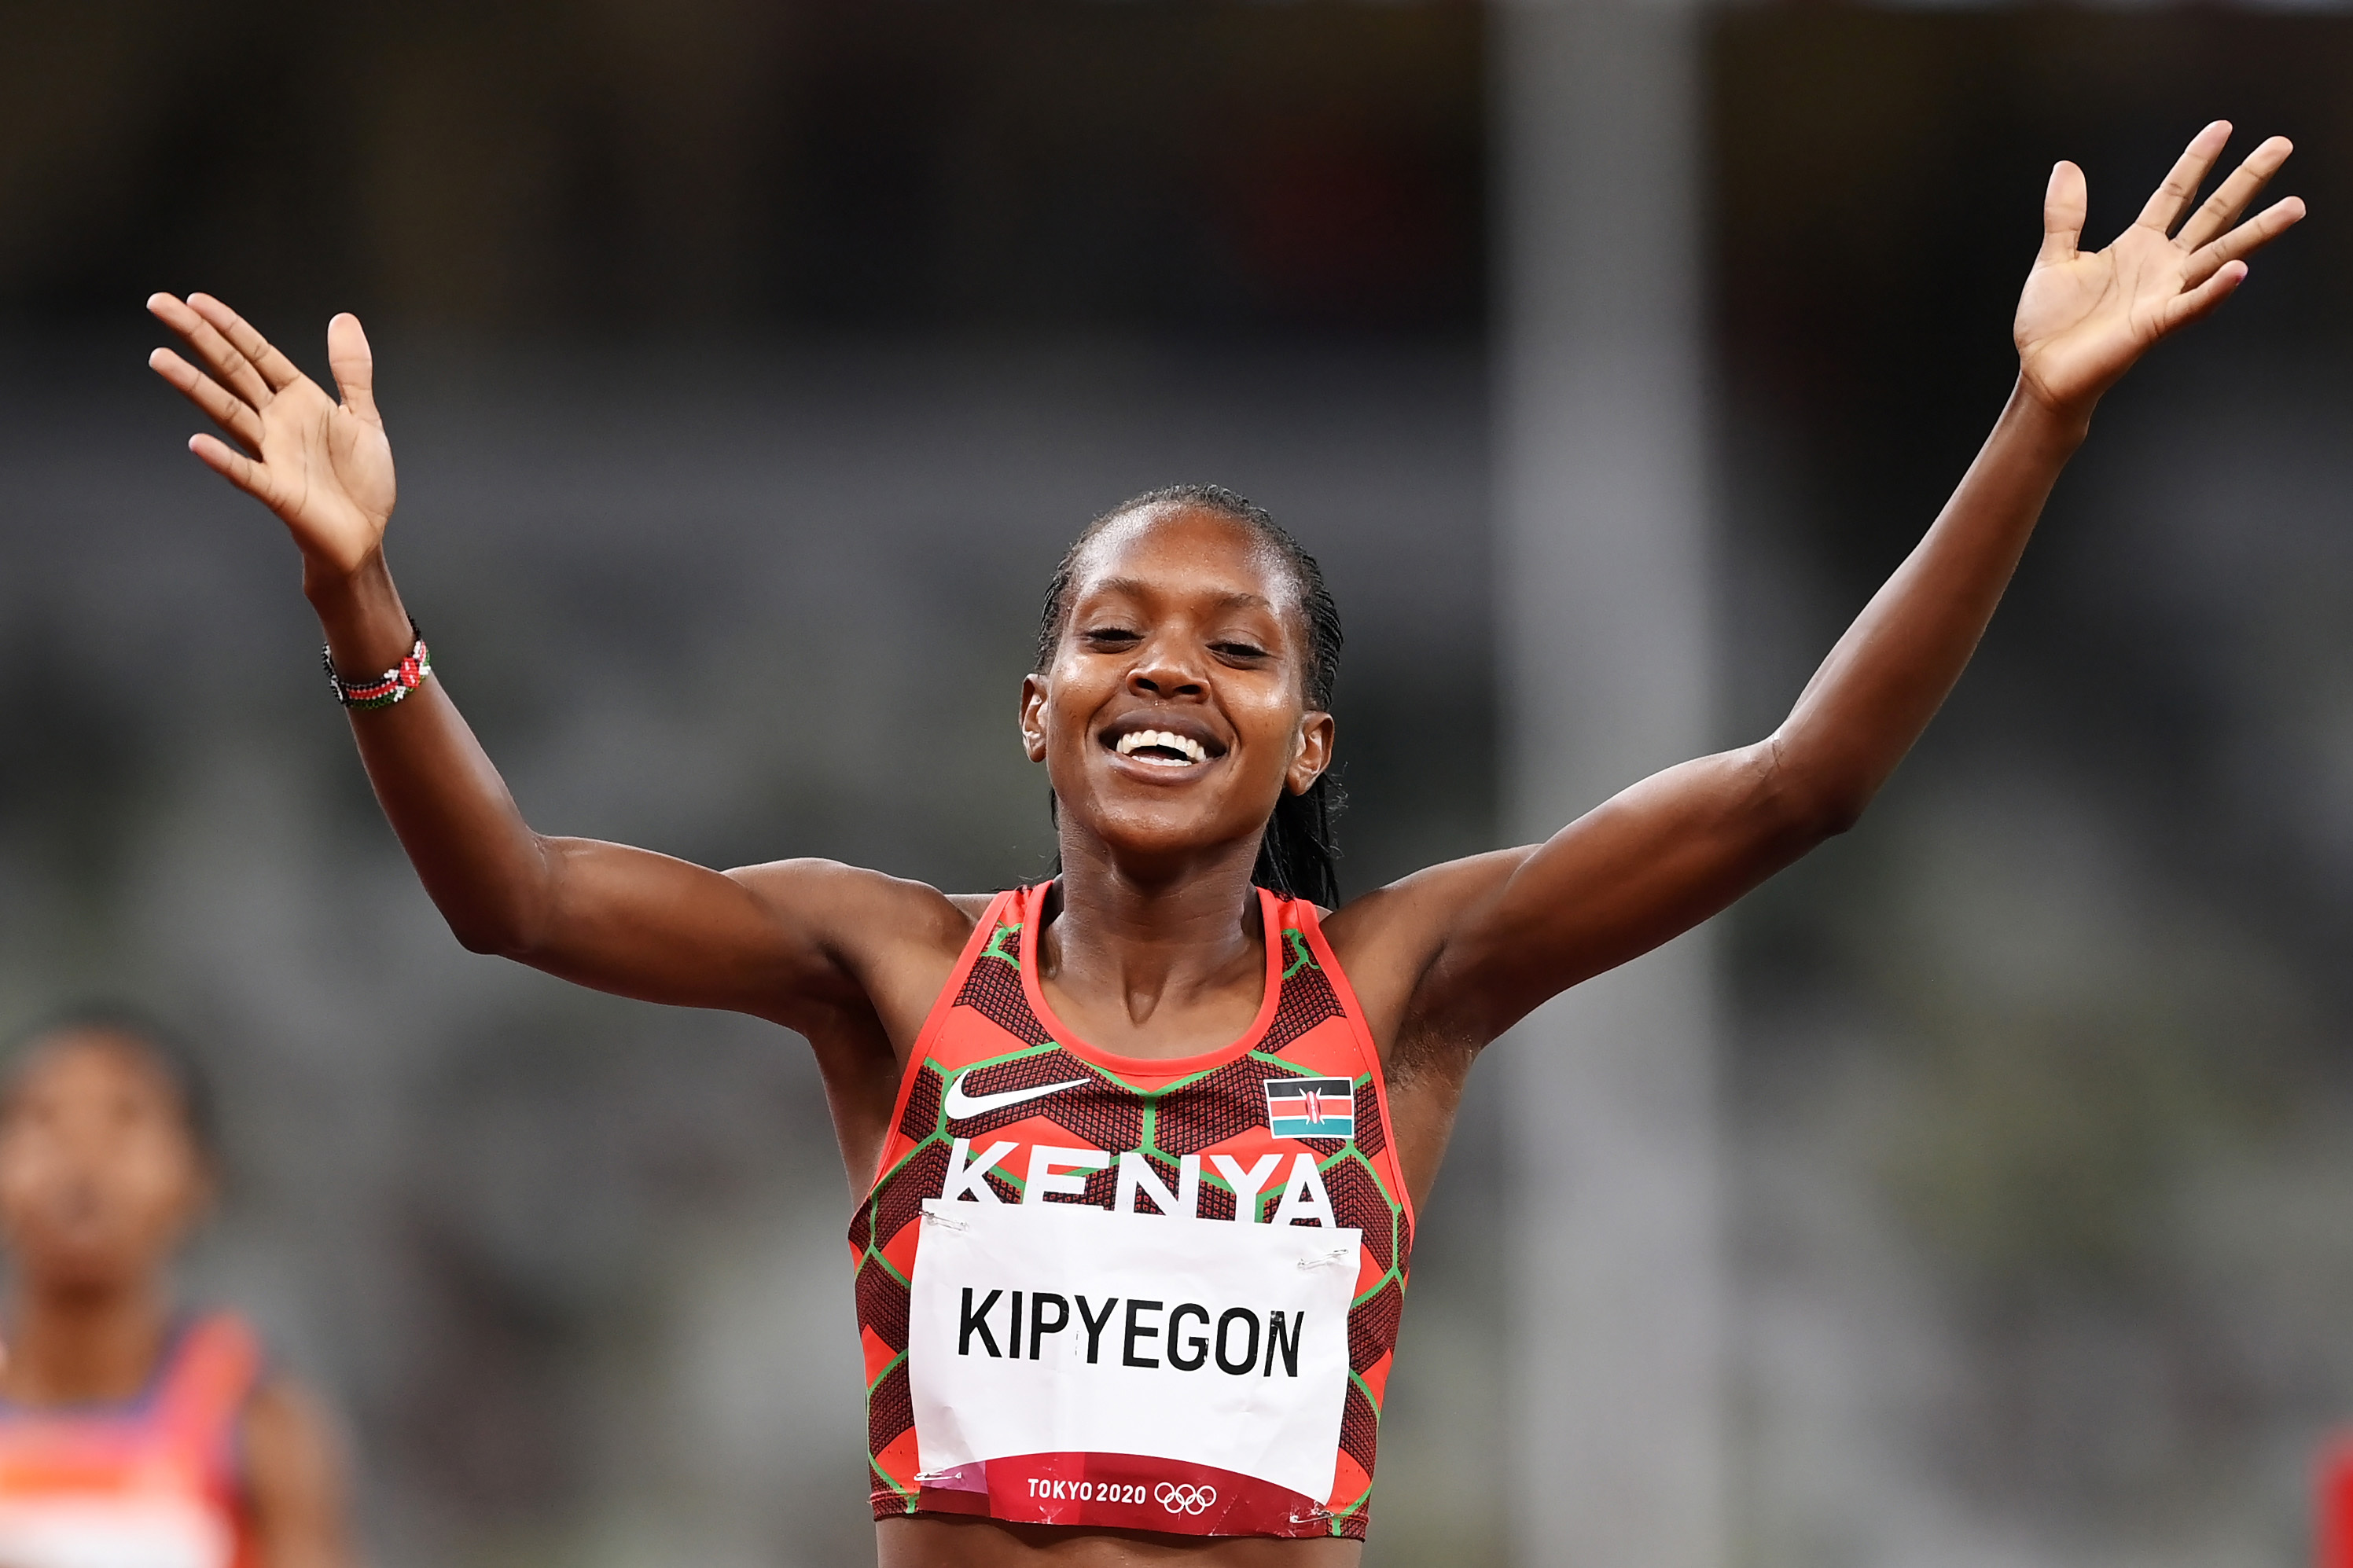 Kenya's Faith Kipyegon wins the gold medal in the women's 1,500 meters on August 6.